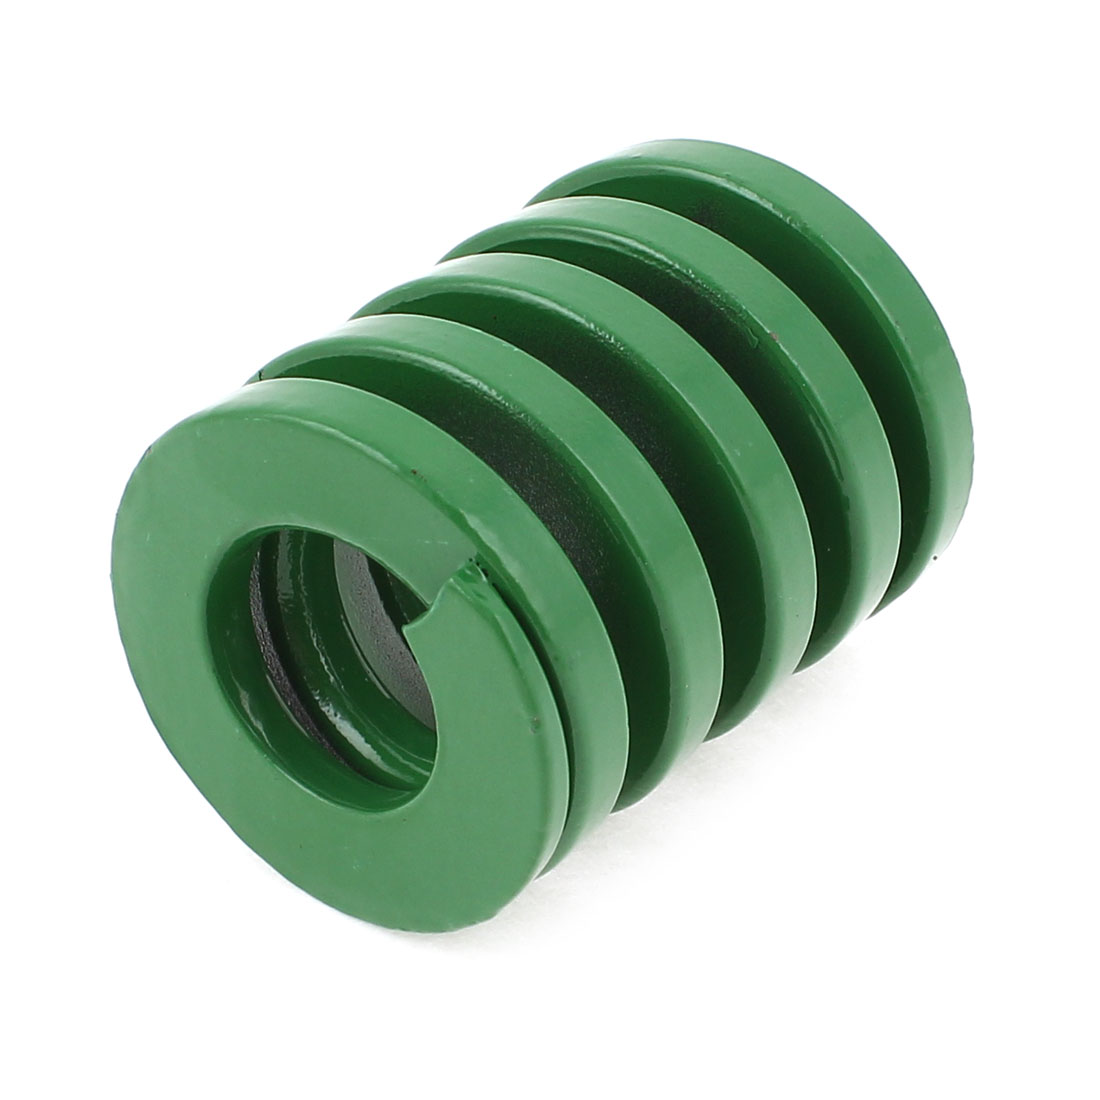 40mm x 20mm x 50mm Green Chromium Alloy Steel Compression Die Spring